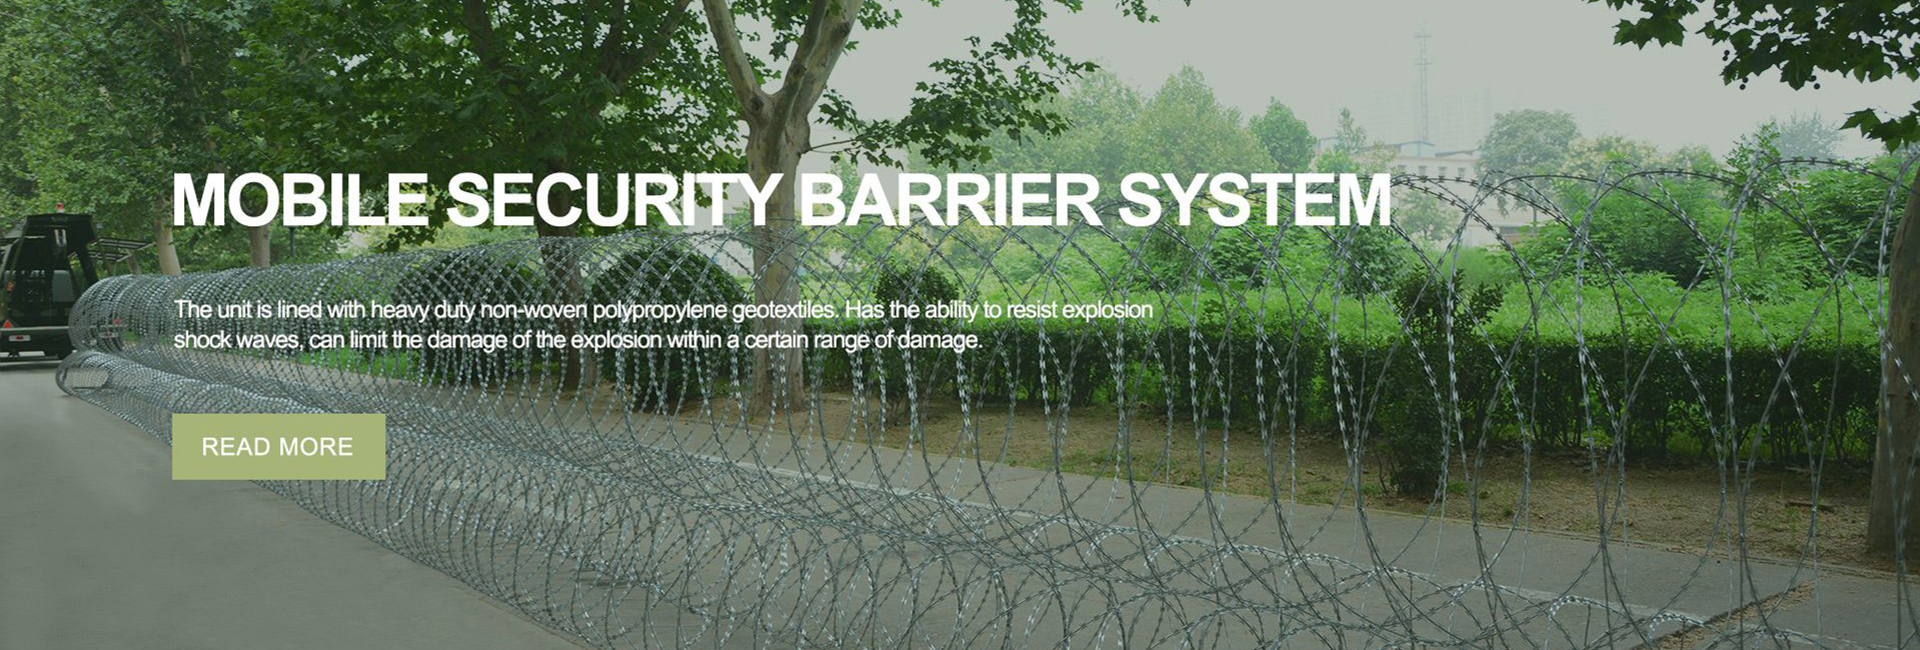 mobile security barrier system